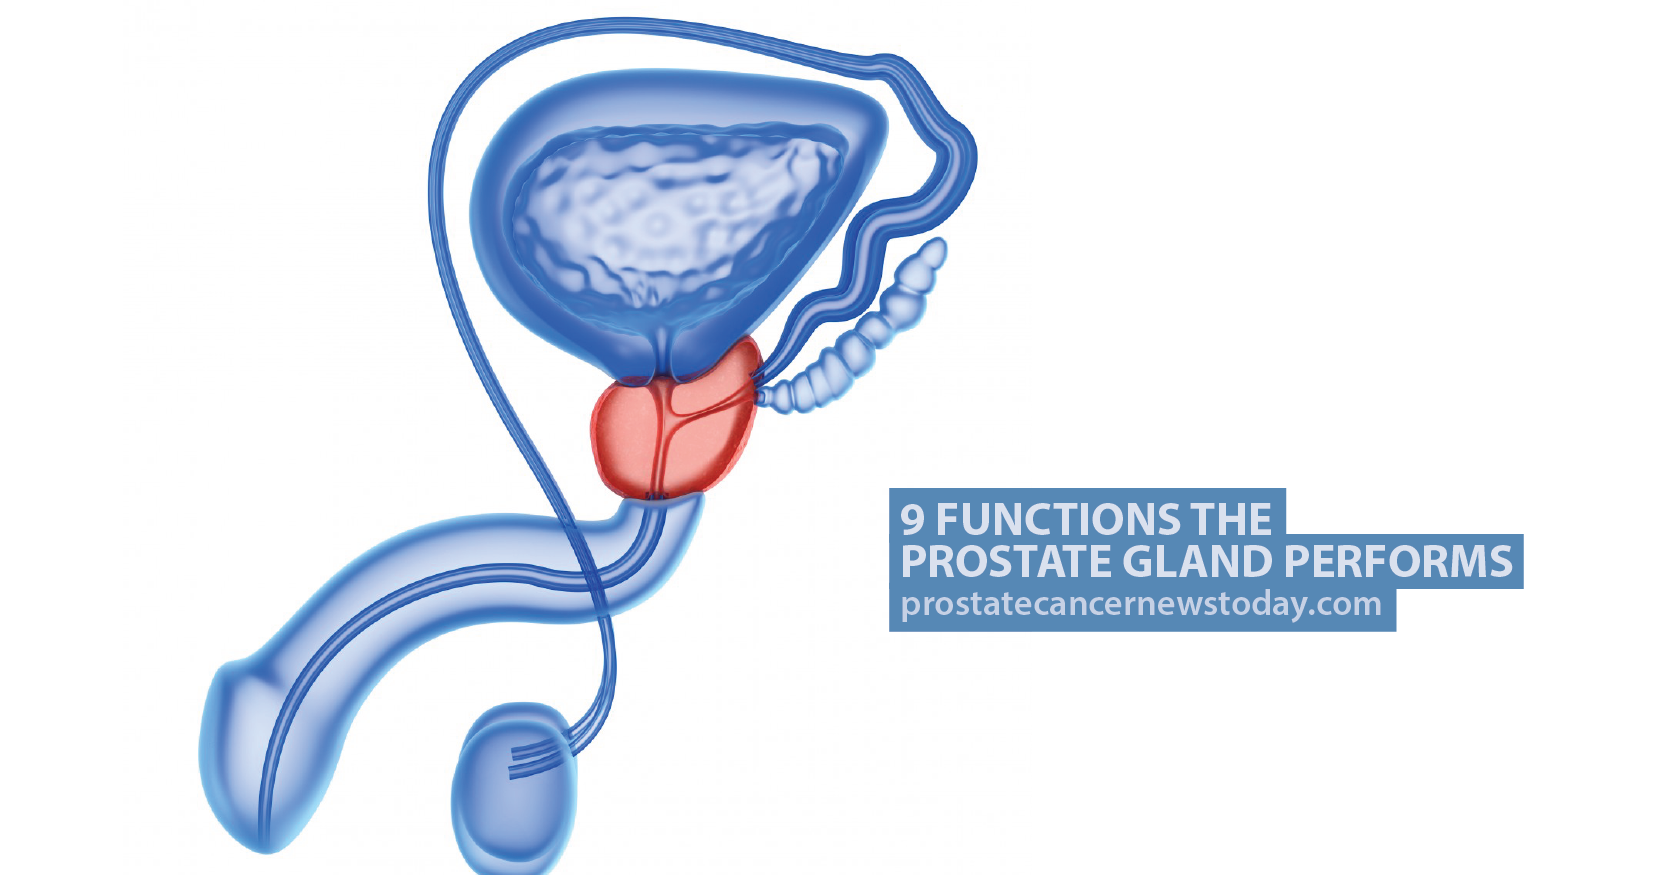 9 Functions The Prostate Gland Performs Prostate Cancer News Today